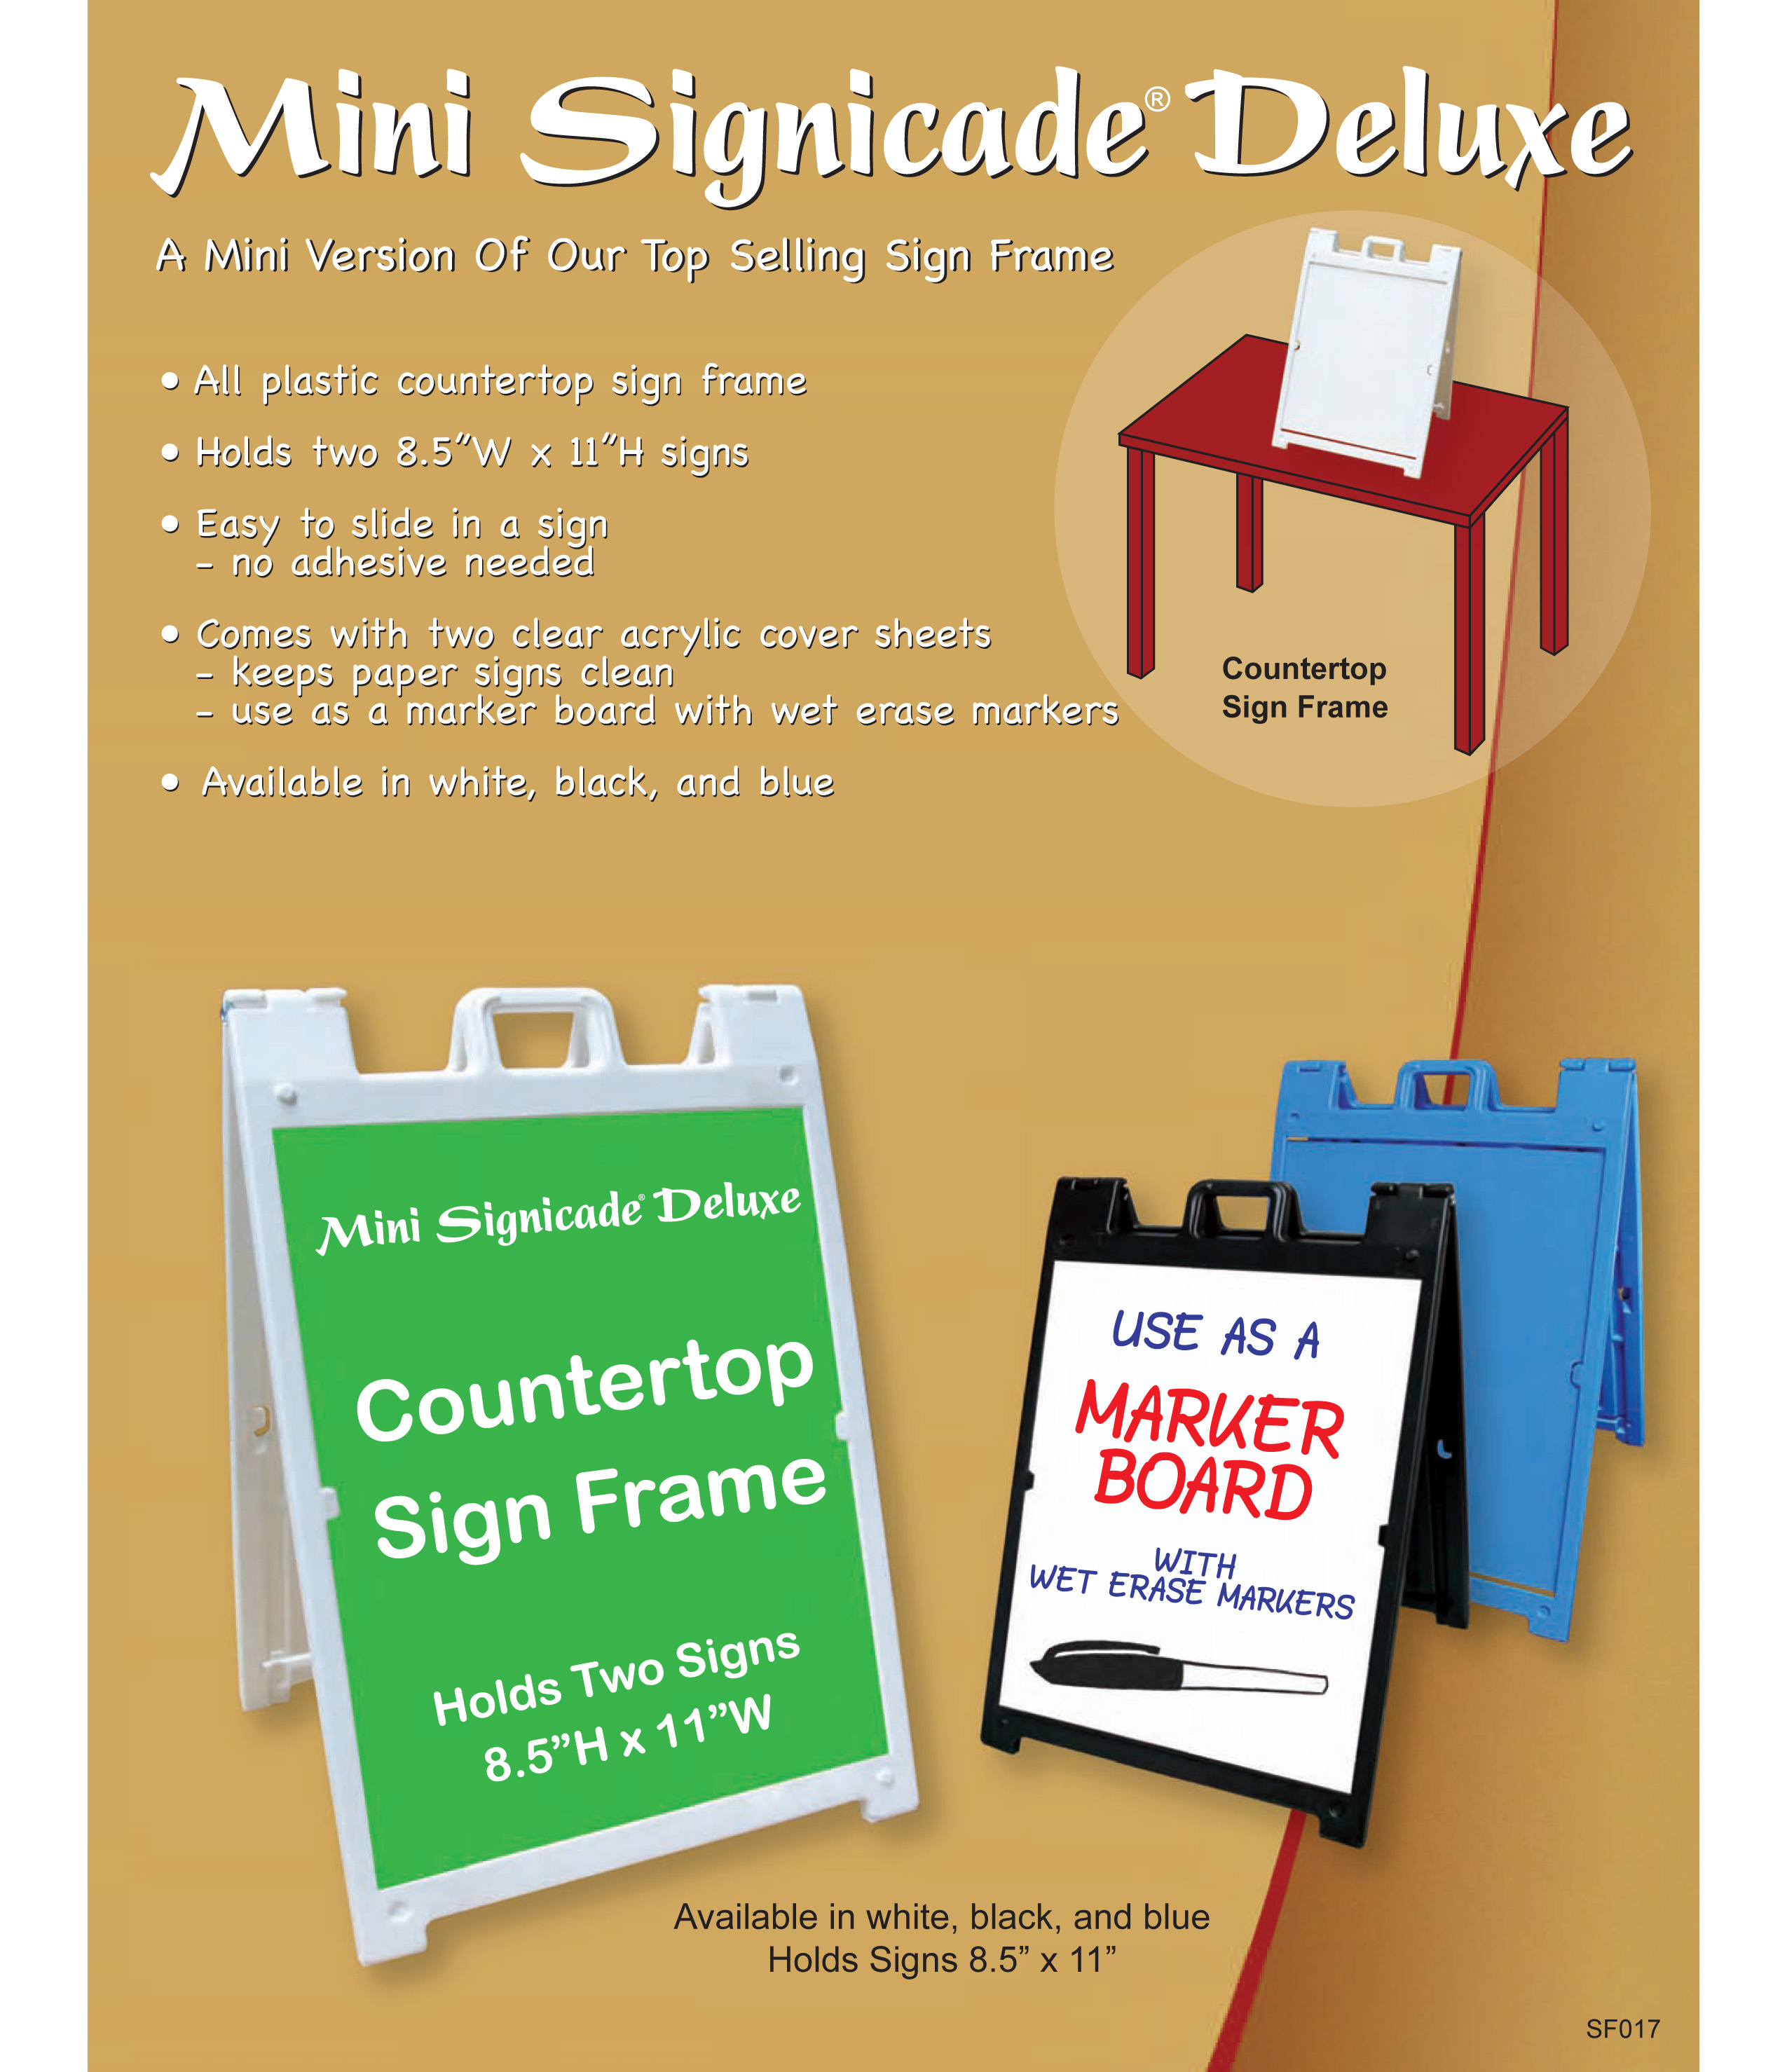 Countertop Signs Event And Tradeshow Items